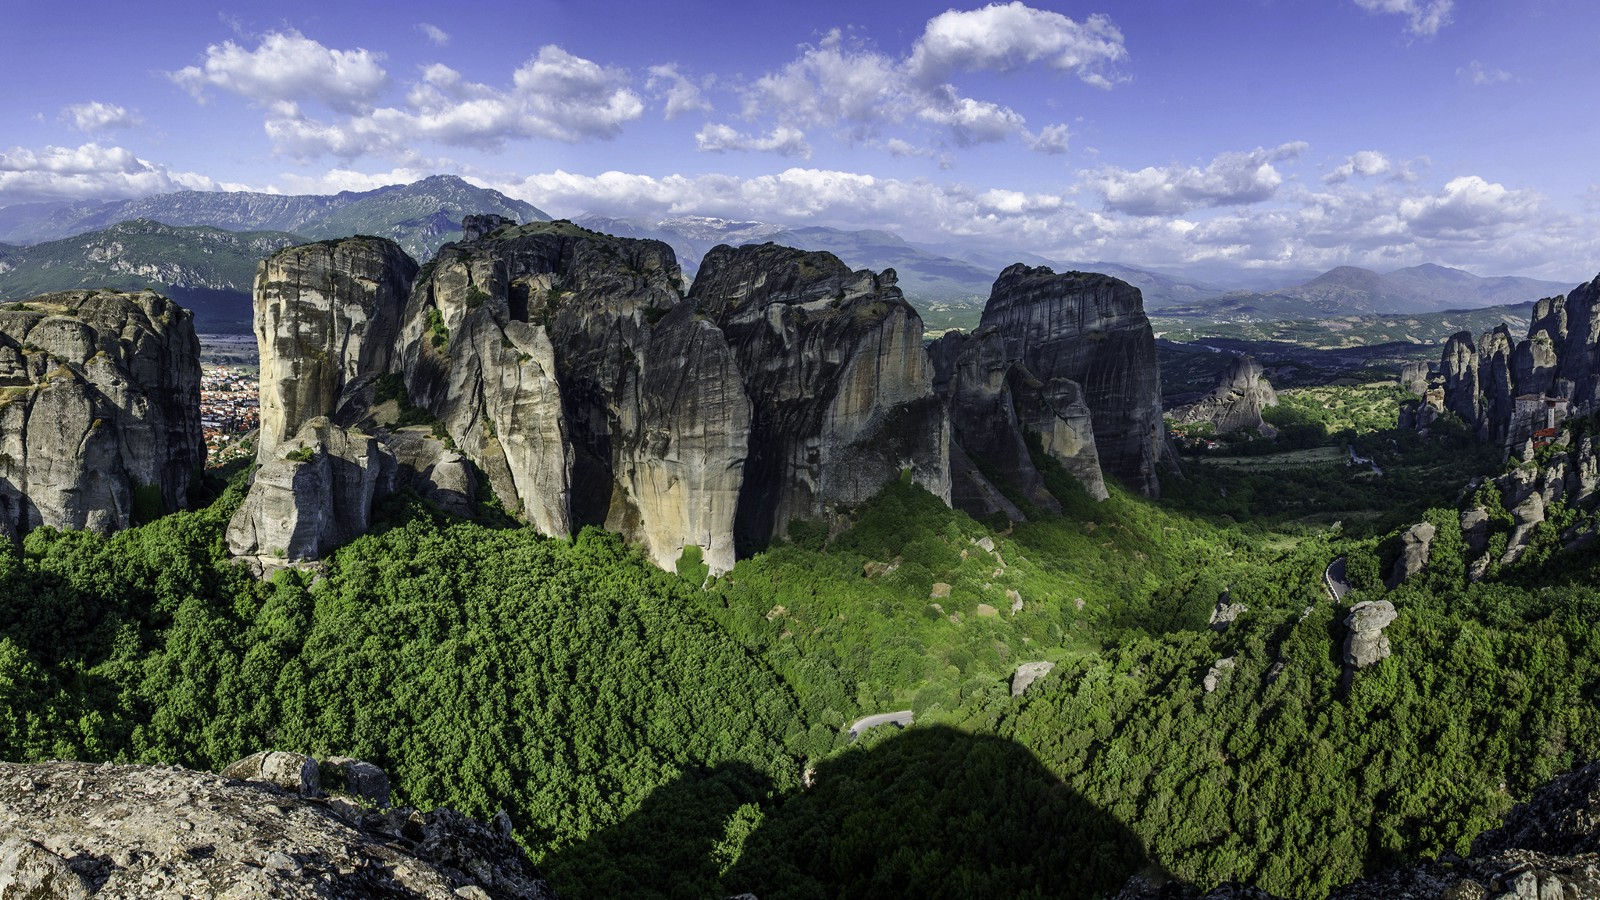 Panoramic view of Meteora, a collection of monasteries at the top of a group of stone pillars in Greece